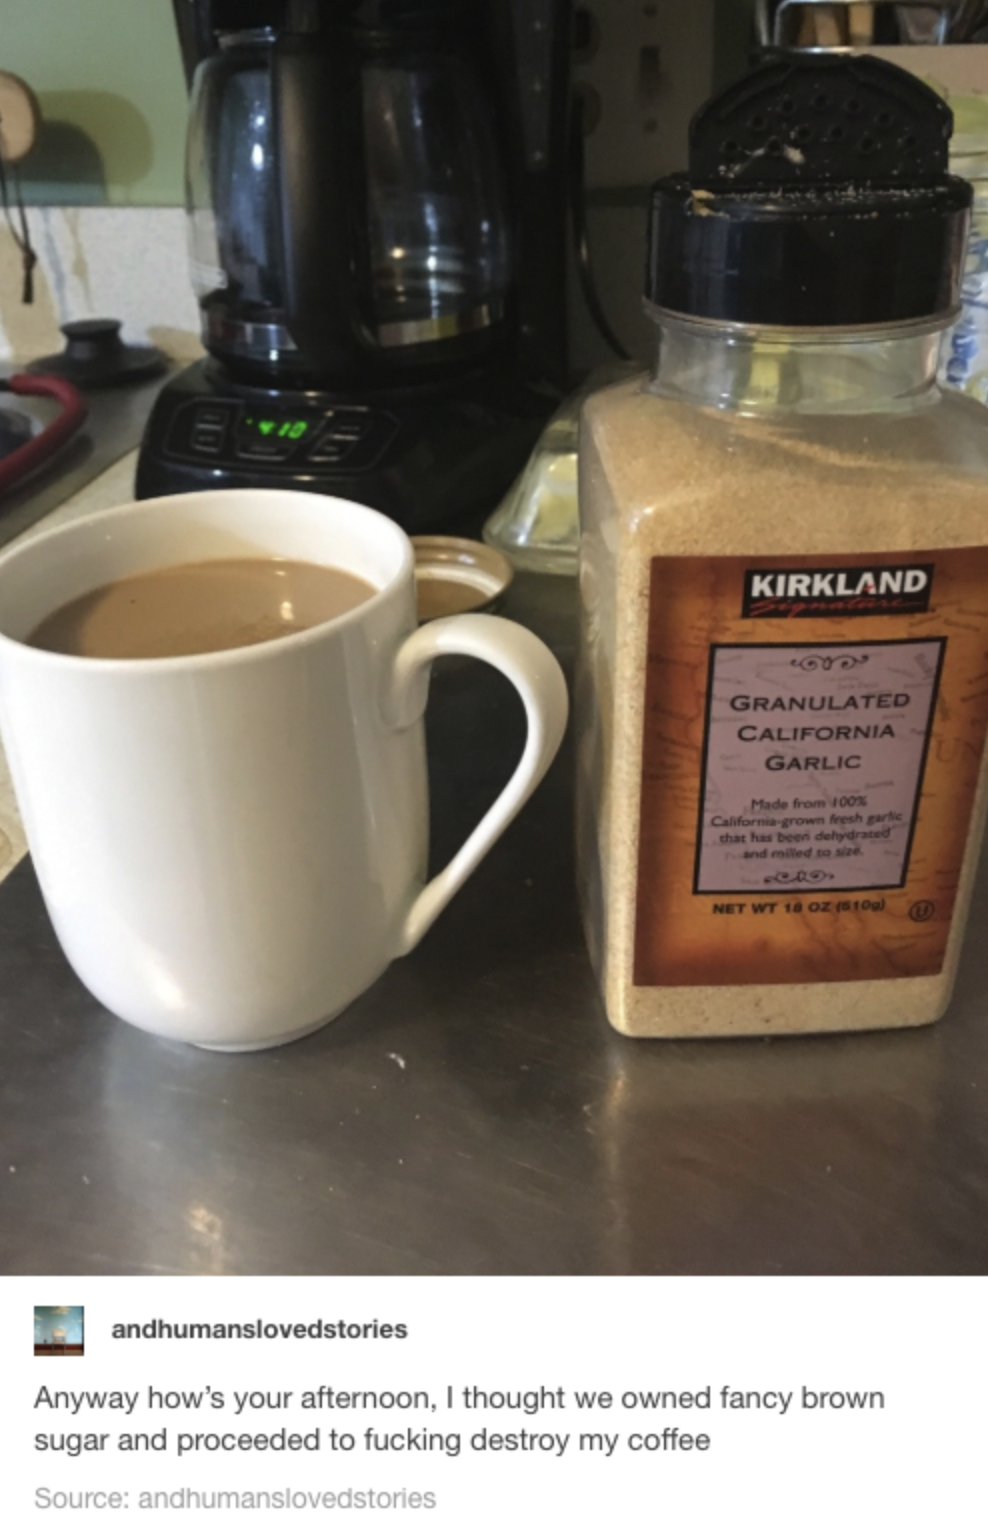 person who accidentally put garlic granules into their coffee instead of sugar